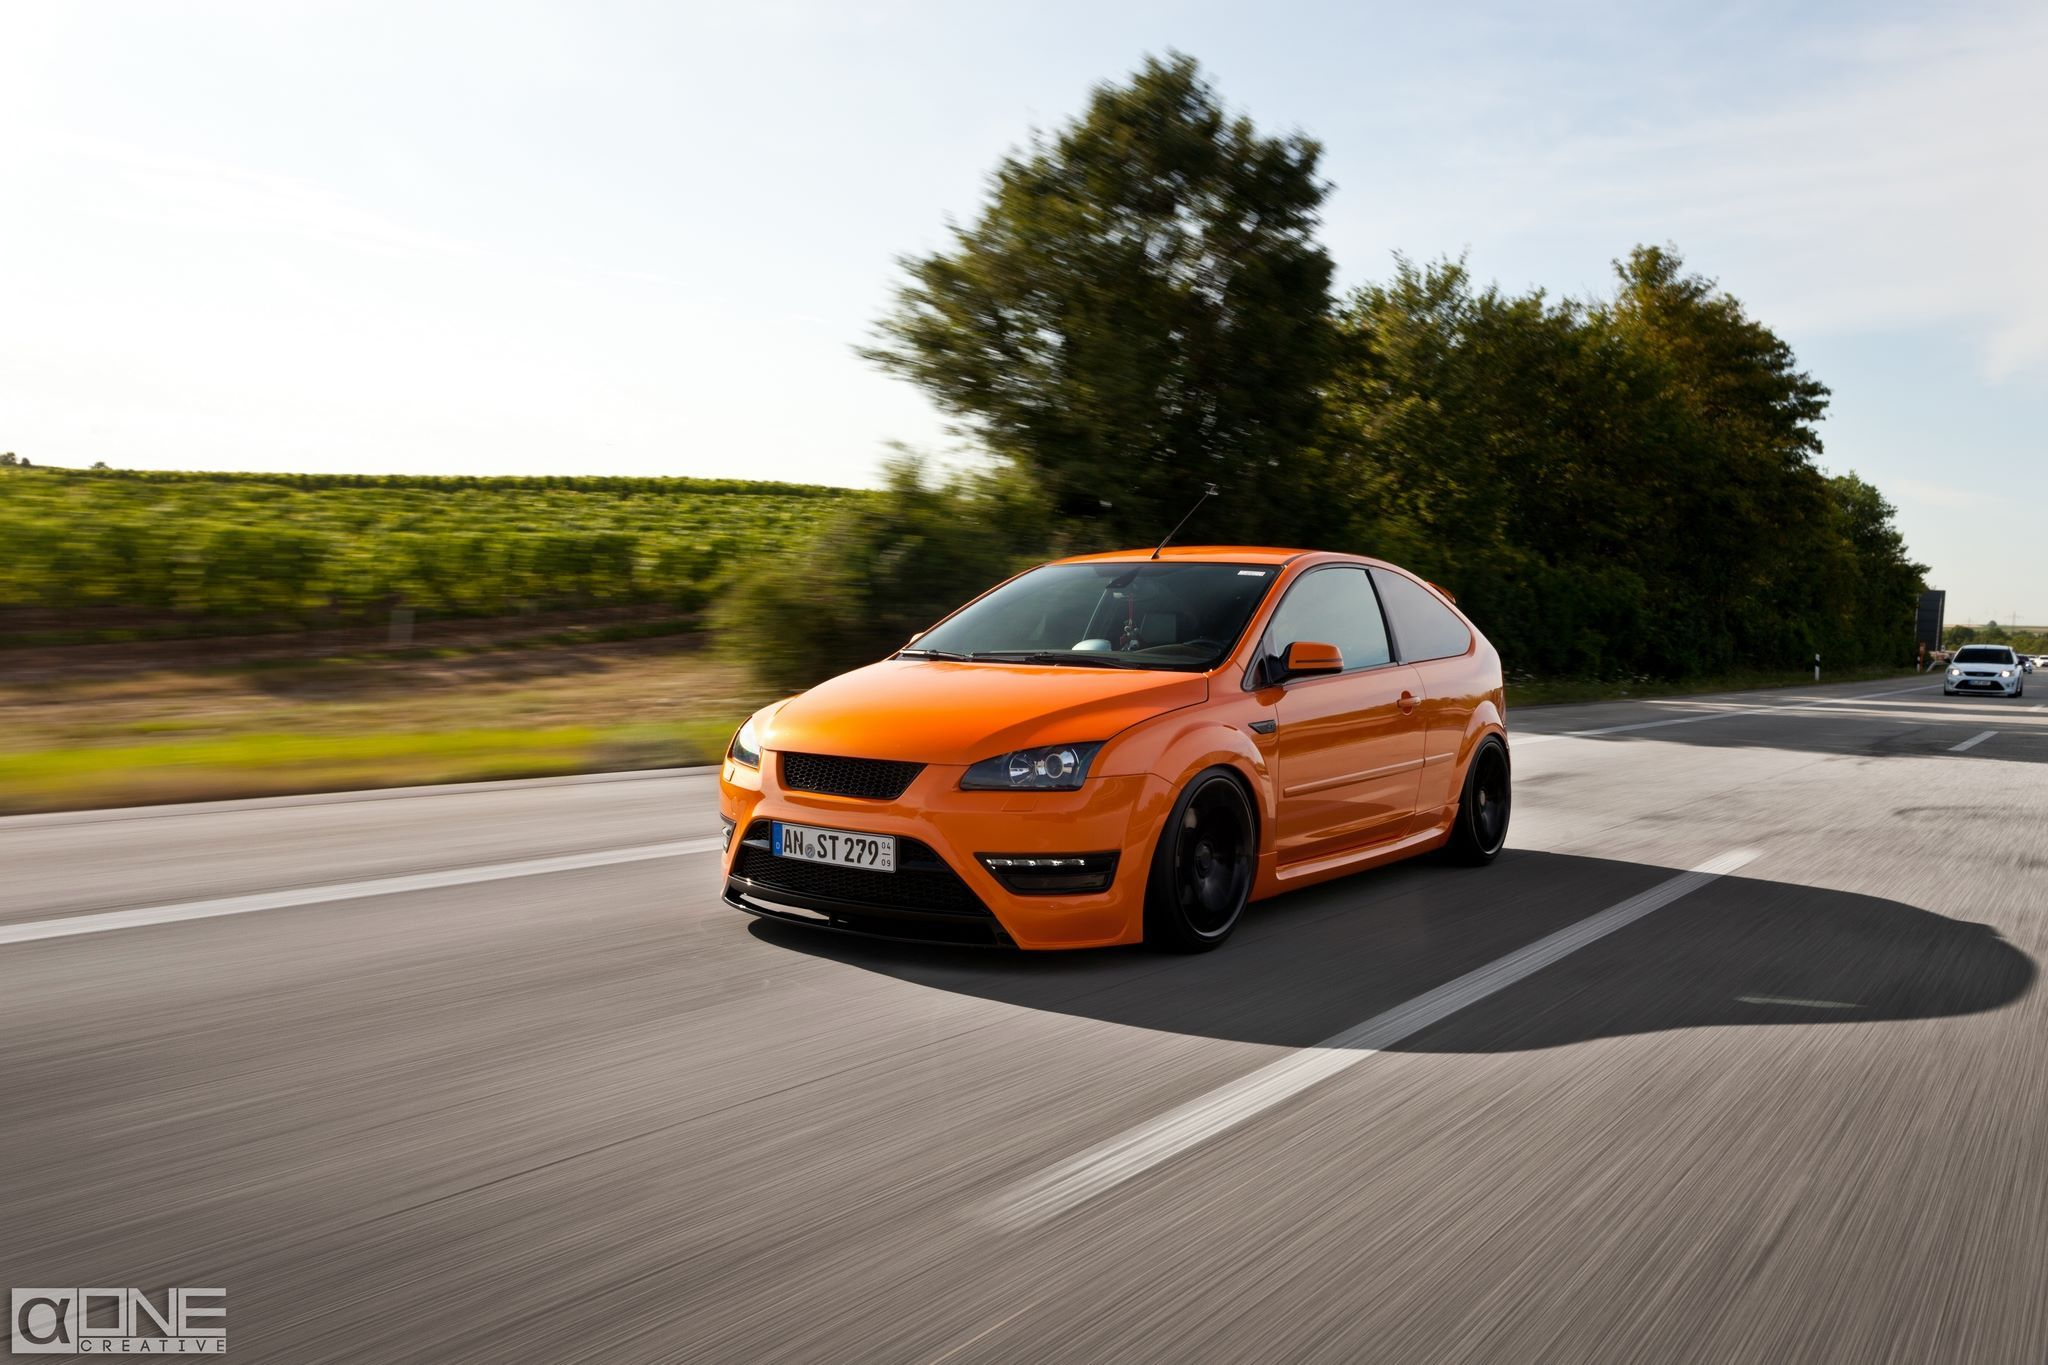 ford focus st mk2 electric orange ford focus st tuning. Black Bedroom Furniture Sets. Home Design Ideas